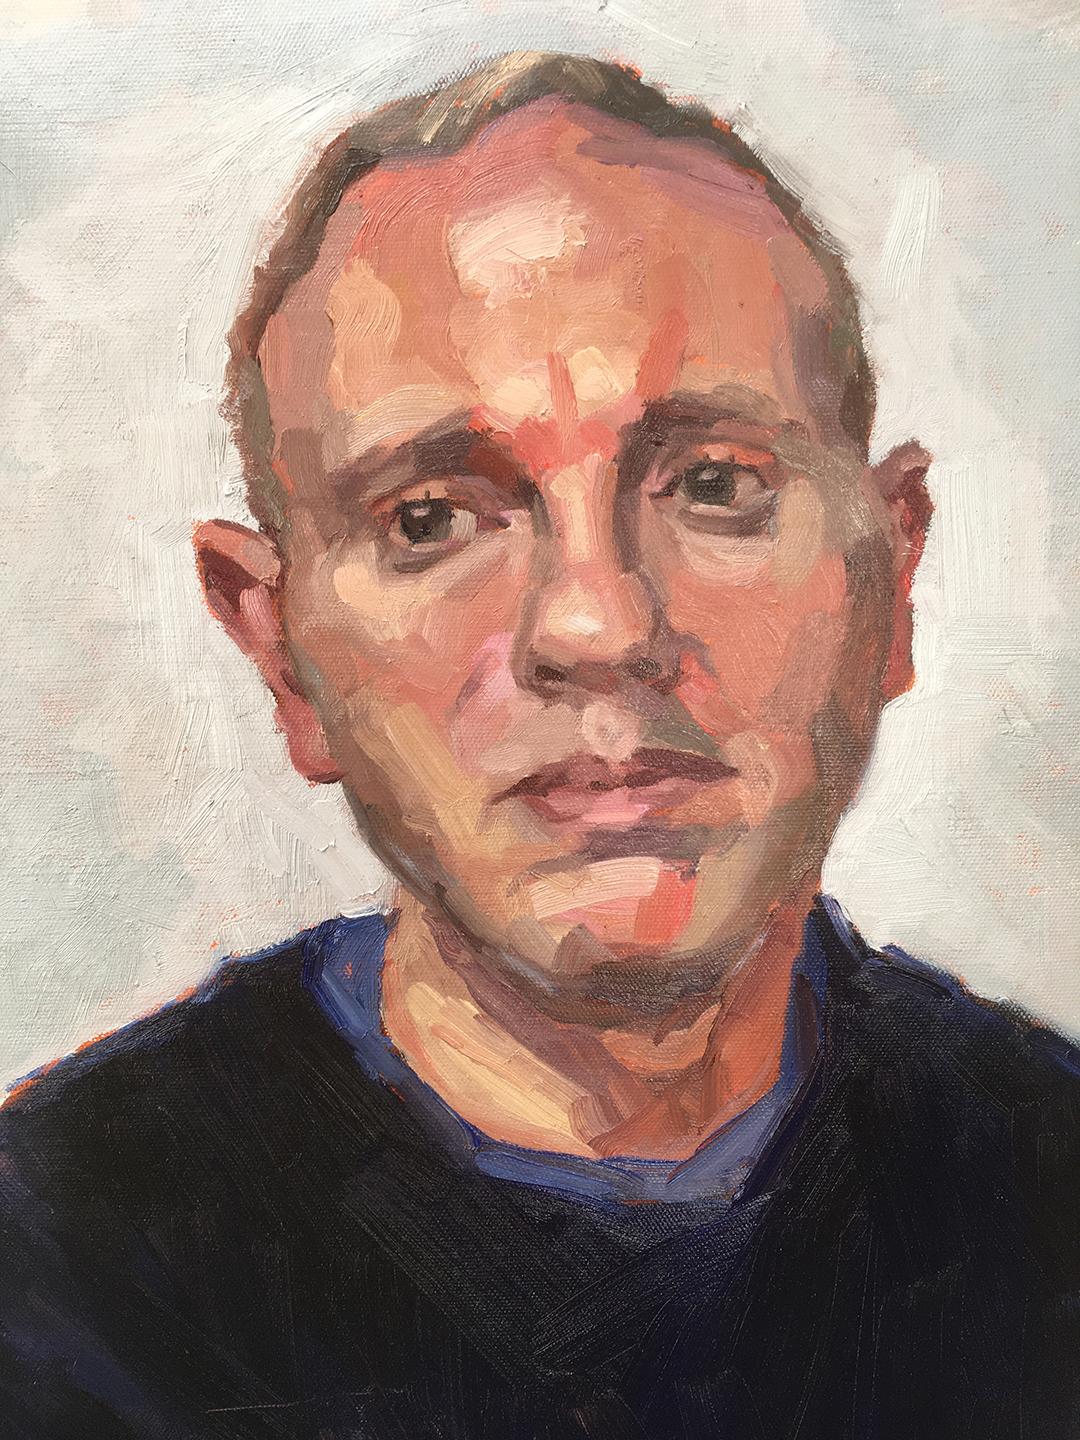 Robert Rinder, 2020 Wendy Barratt Oil on canvas, 45 x 35 cm